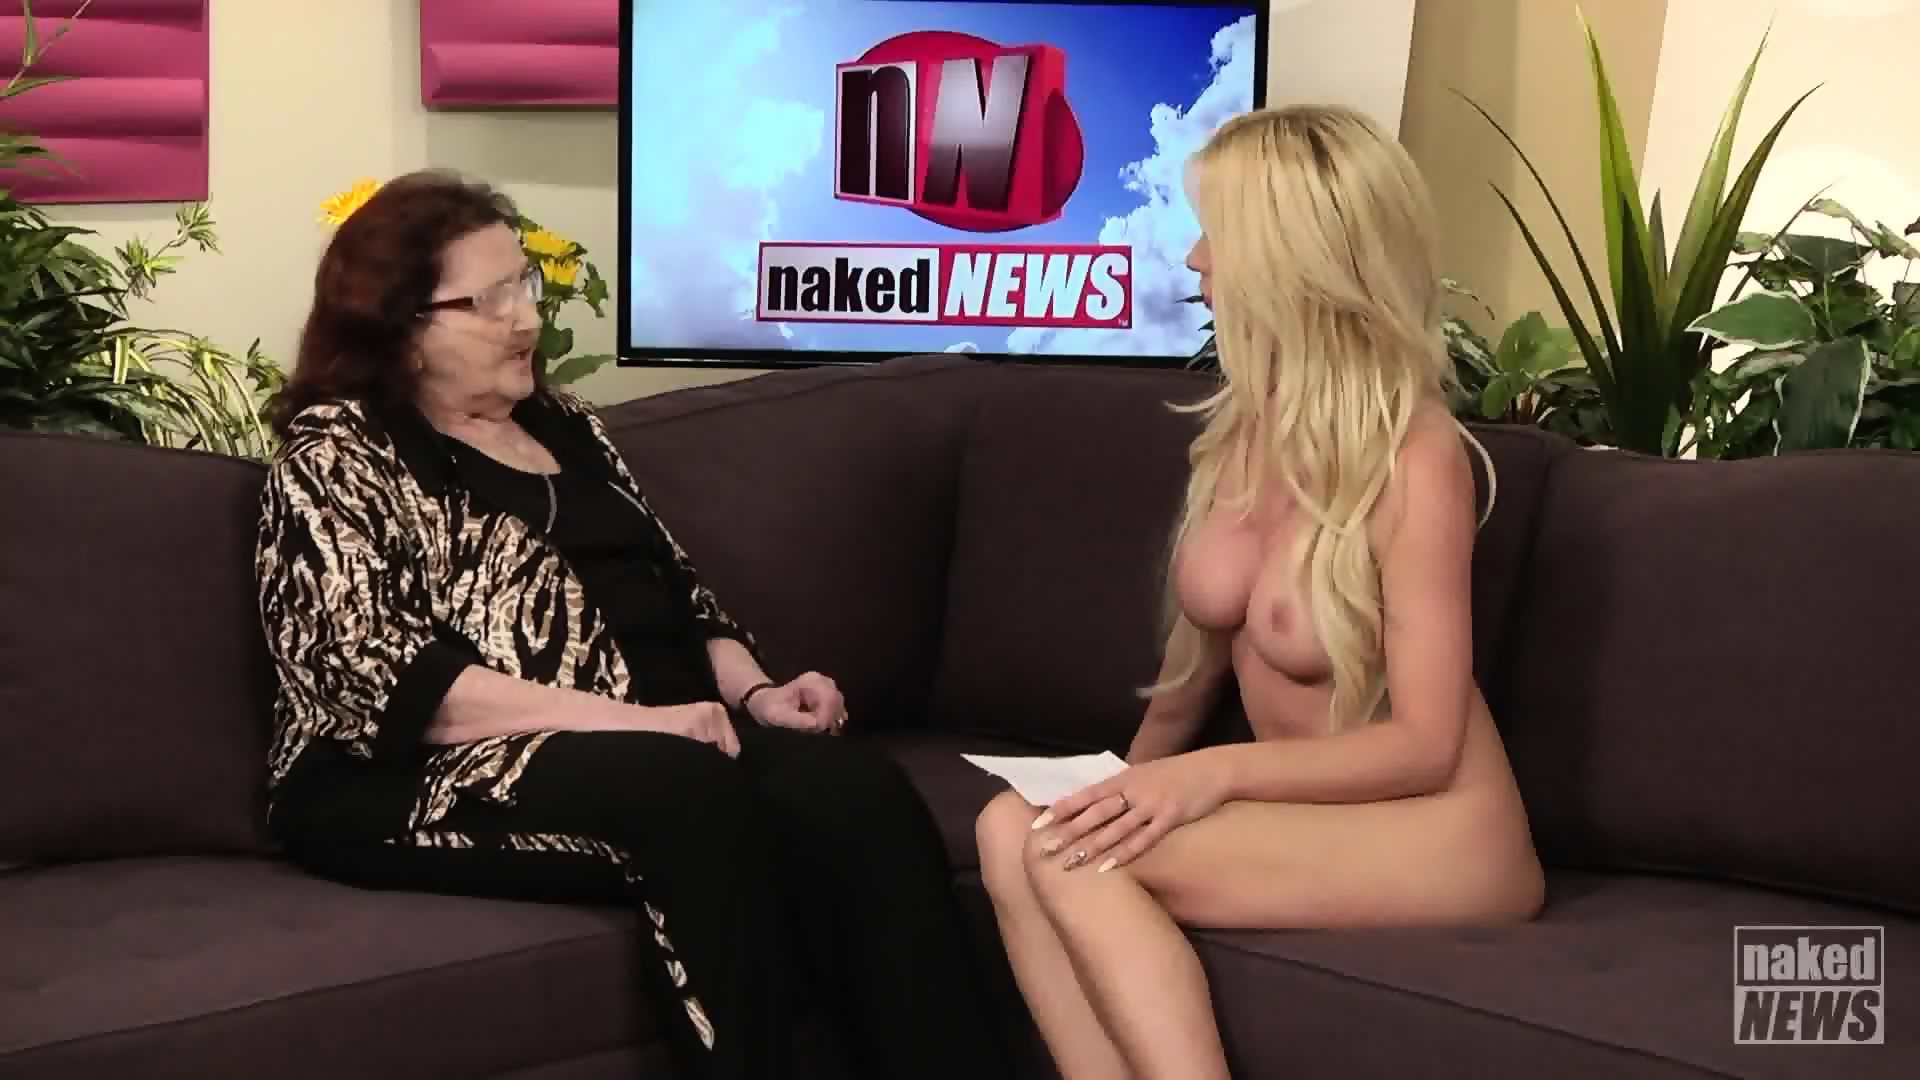 Naked TV Presenters - EPORNER